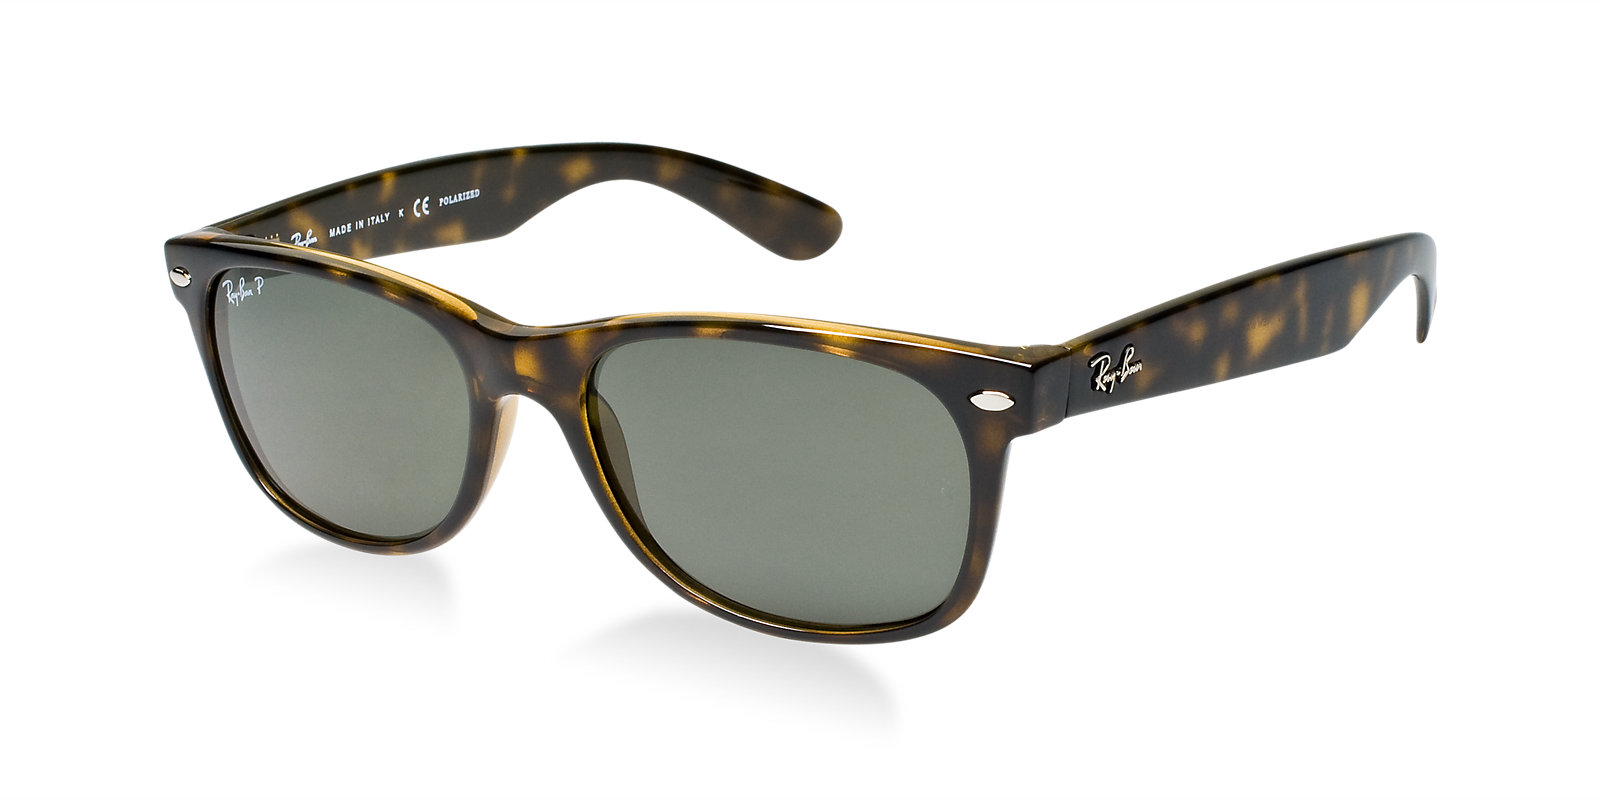 ray ban rb2132 902 58 tortoise polarized new wayfarer sunglasses lux eyewear. Black Bedroom Furniture Sets. Home Design Ideas